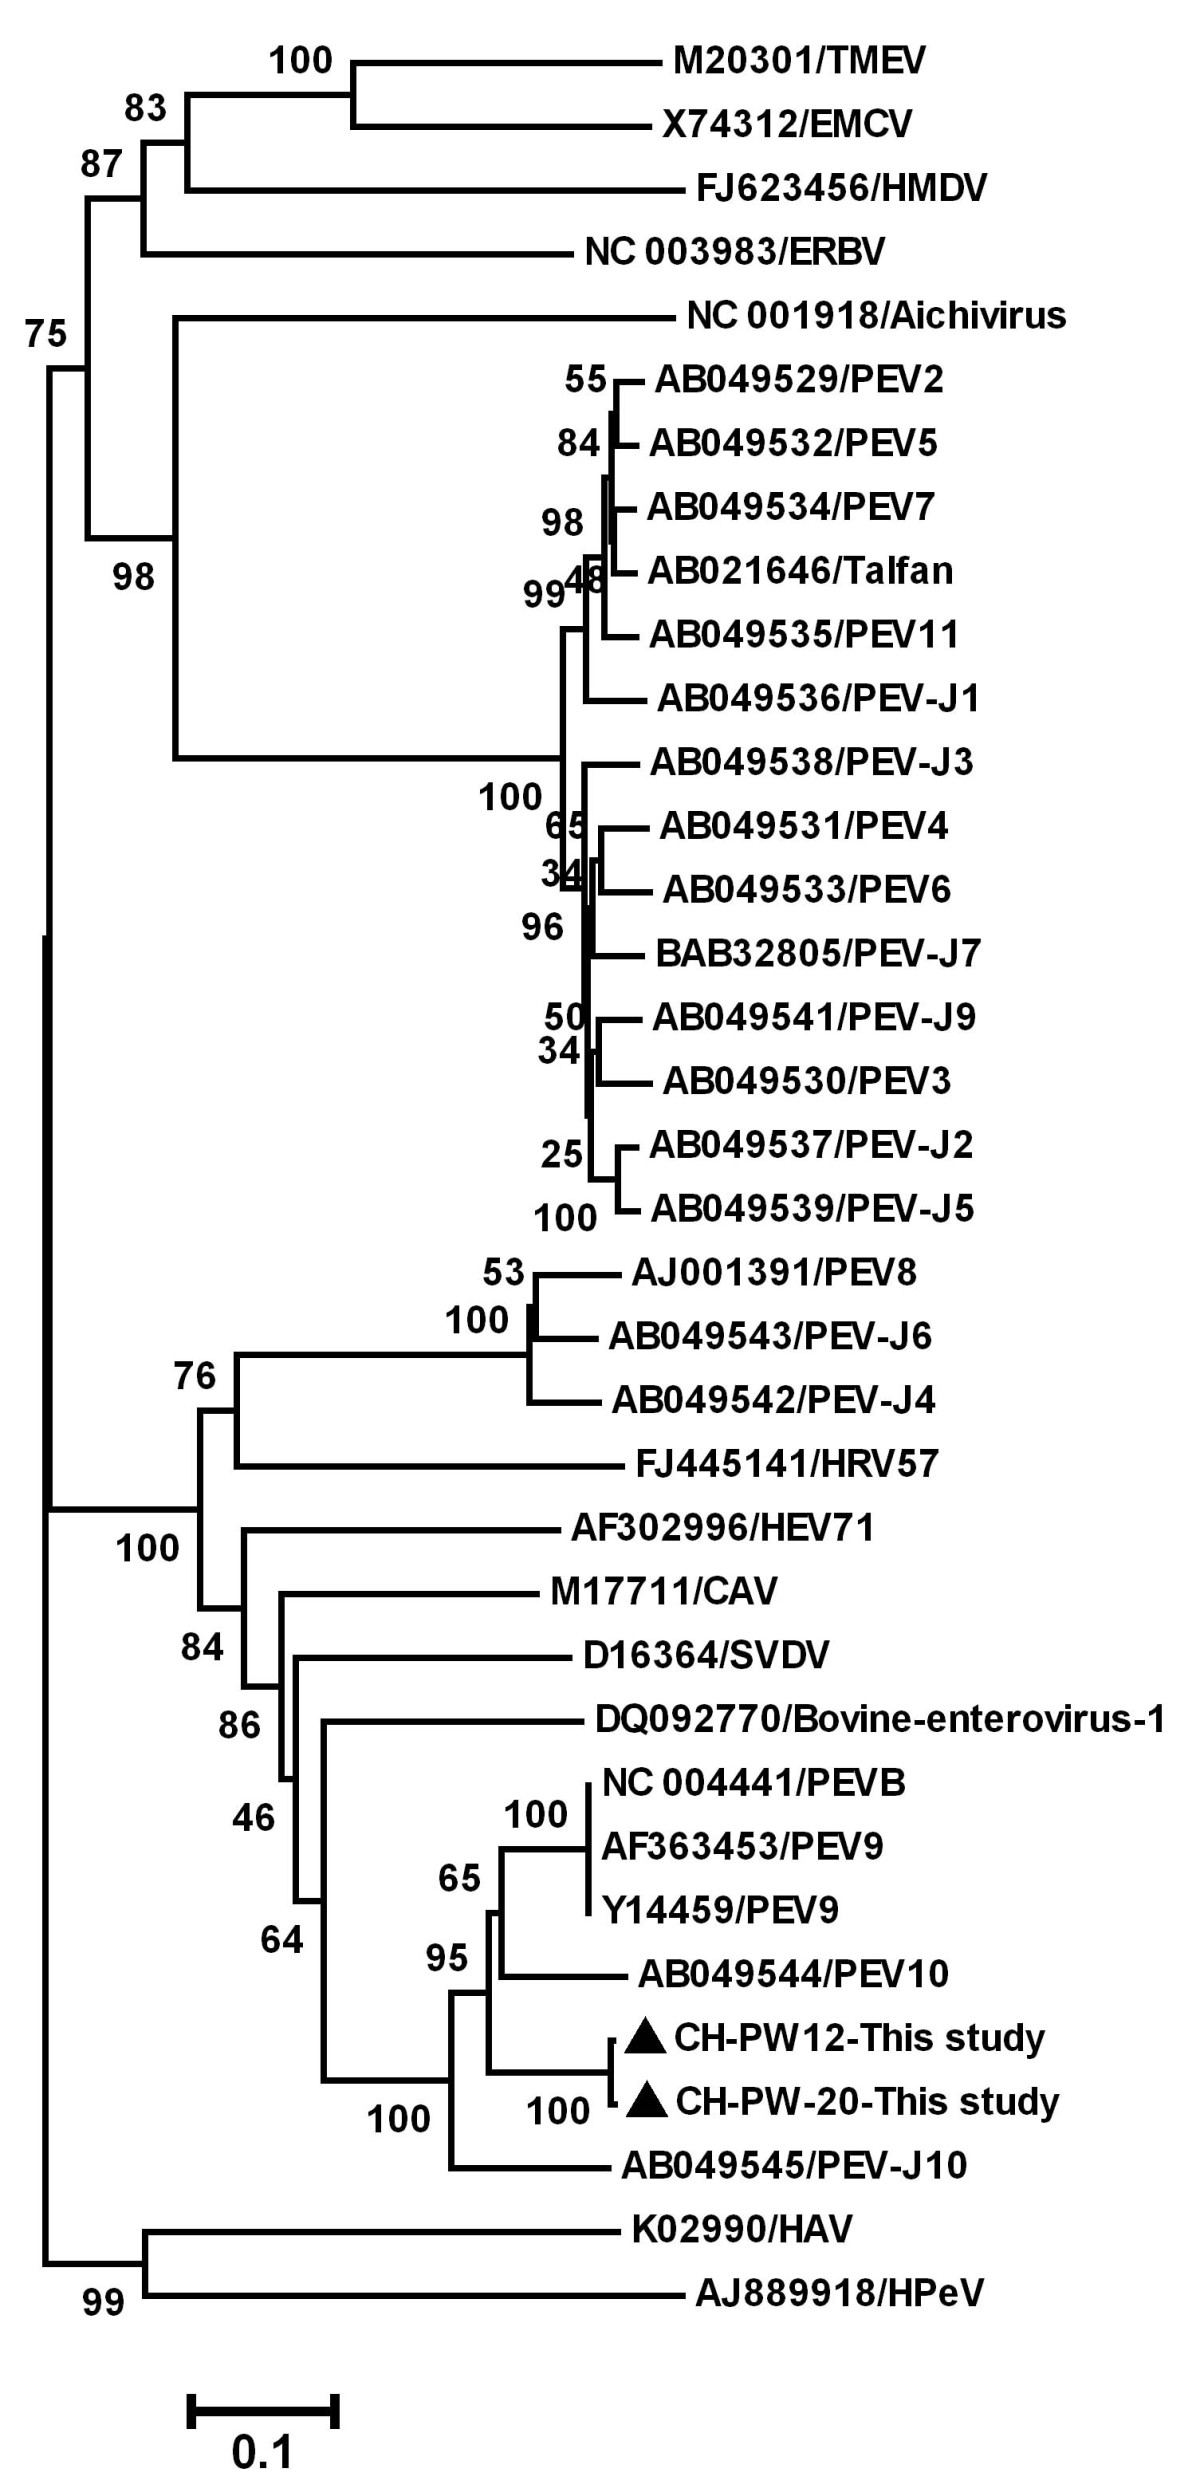 https://static-content.springer.com/image/art%3A10.1186%2F1743-422X-10-99/MediaObjects/12985_2011_Article_2099_Fig2_HTML.jpg